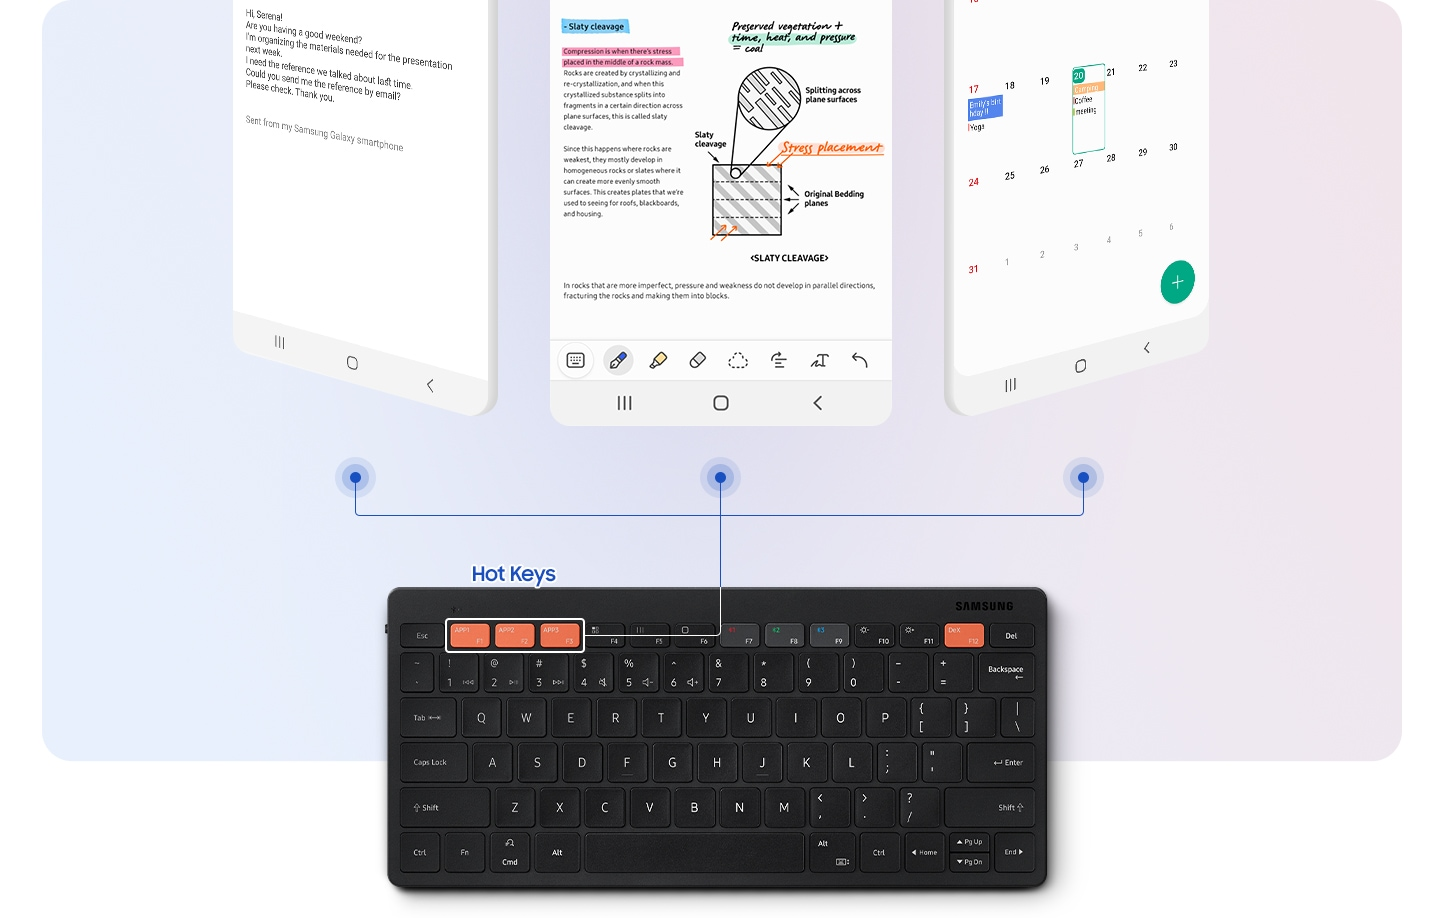 There is a black-colored Samsung Smart Keyboard Trio 500 and a graphic highlighting 3 Hot Keys which are shortcuts to a user's favorite apps by using the F1, F2, and F3 keys. The 3 apps are shown up above the keyboard to effectively show that if a user presses a Hot-Key, the designated app is launched. The left app is an email, the center app is a Samsung note, and the right app is a calendar.